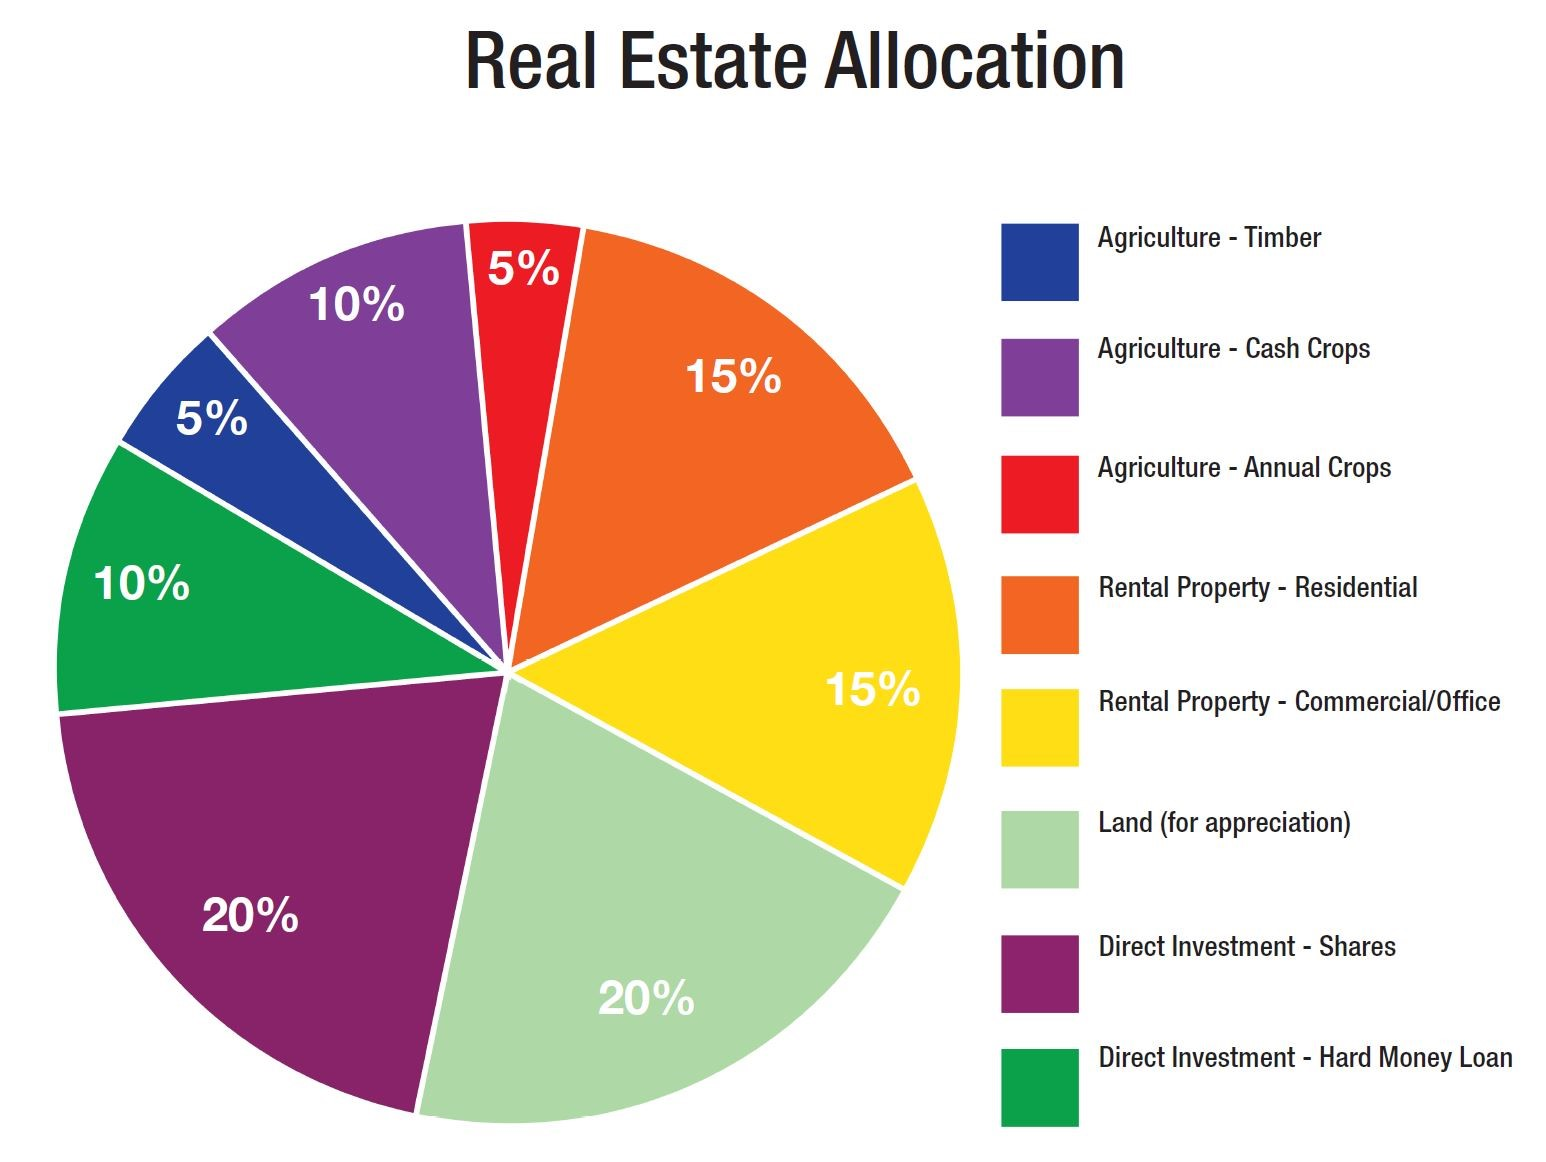 Real Estate Allocation